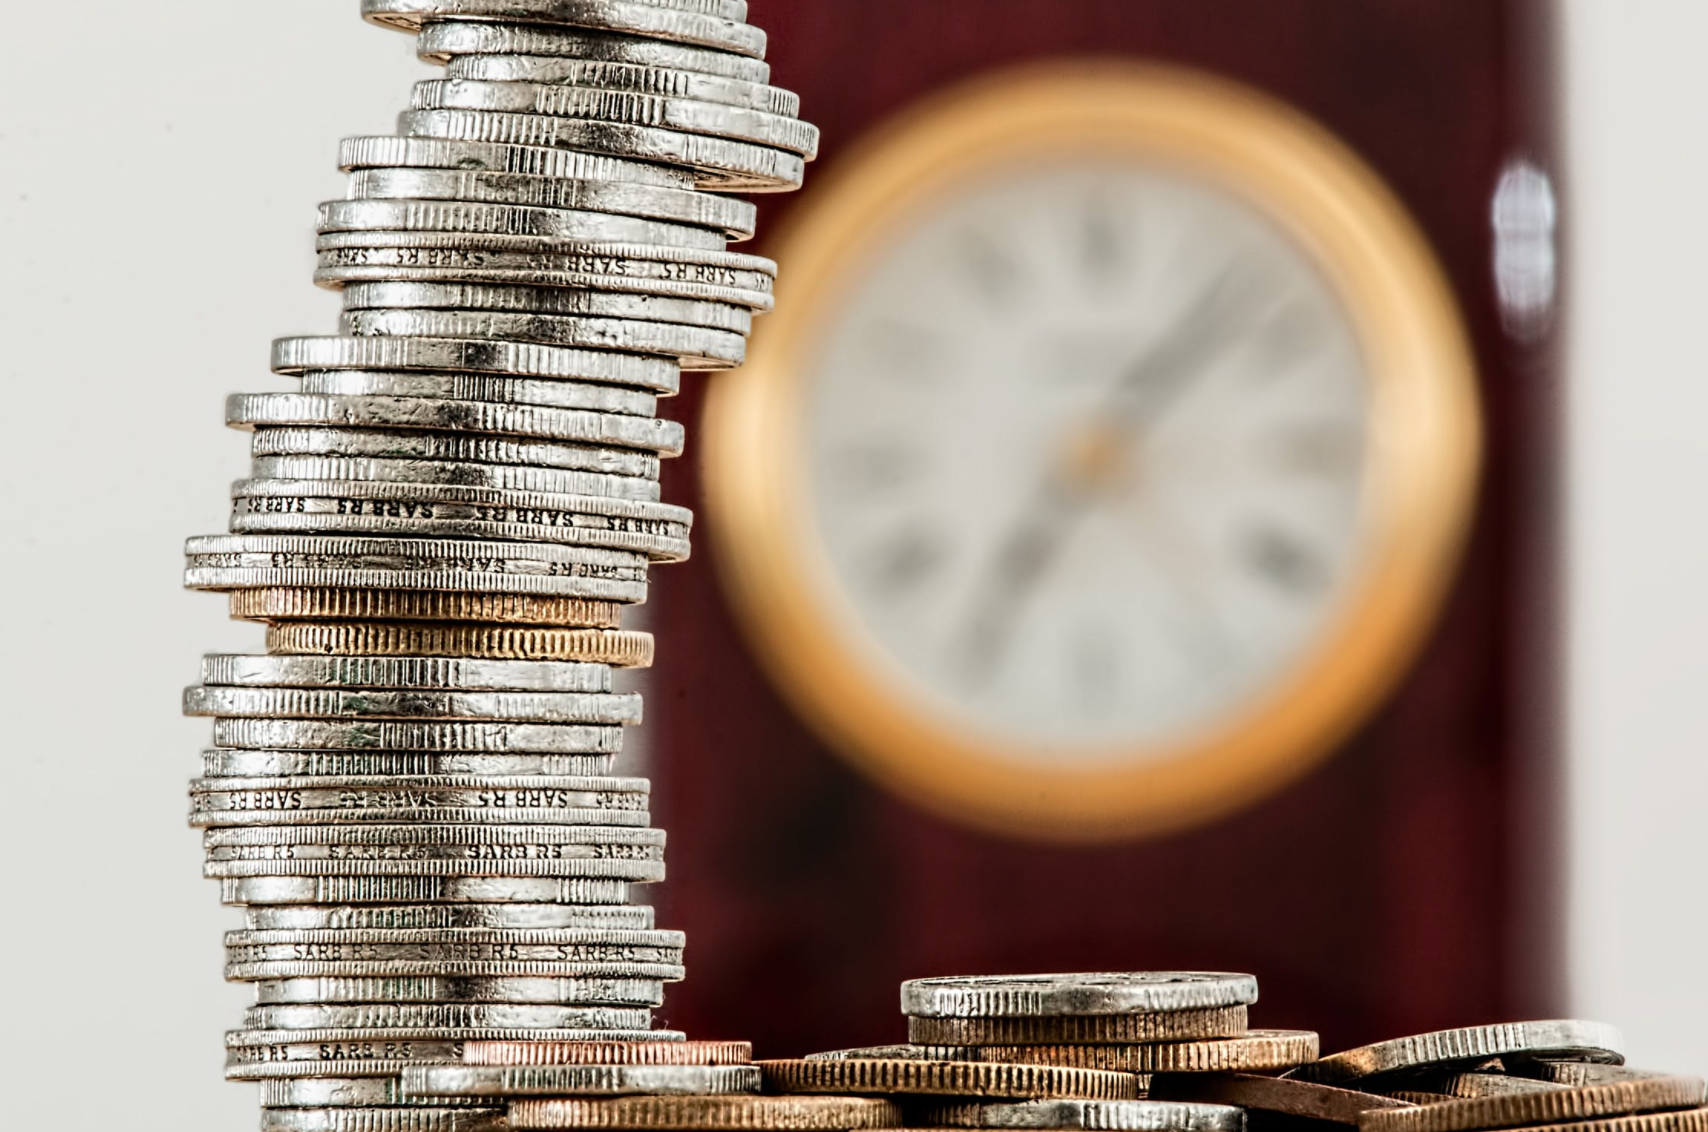 an image of coins and clock